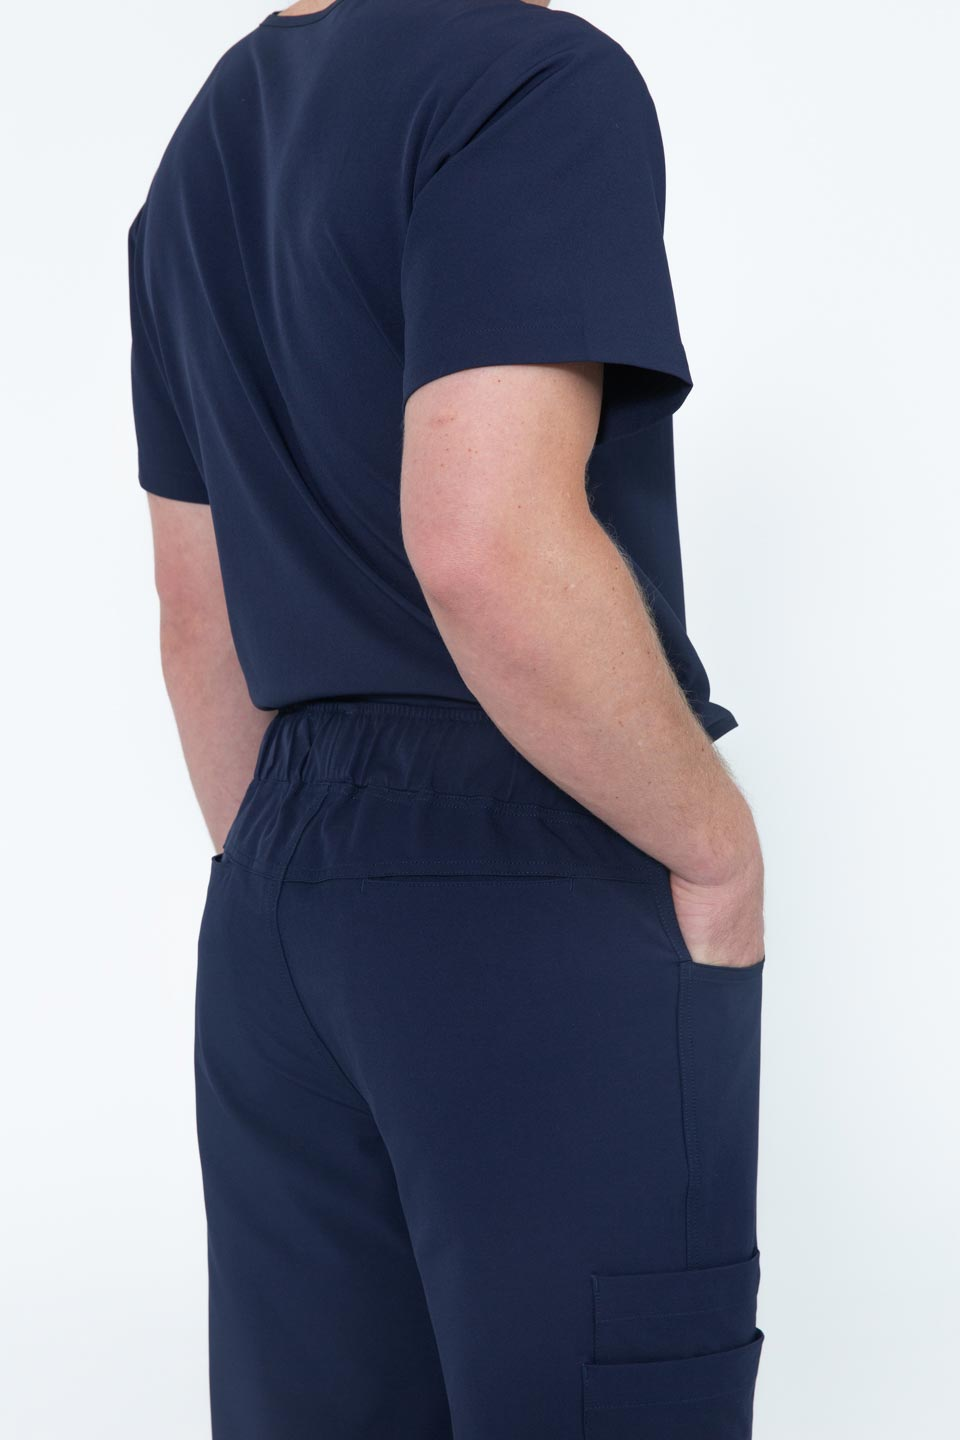 Kalea - Mens Gallant Scrub Pants - Navy